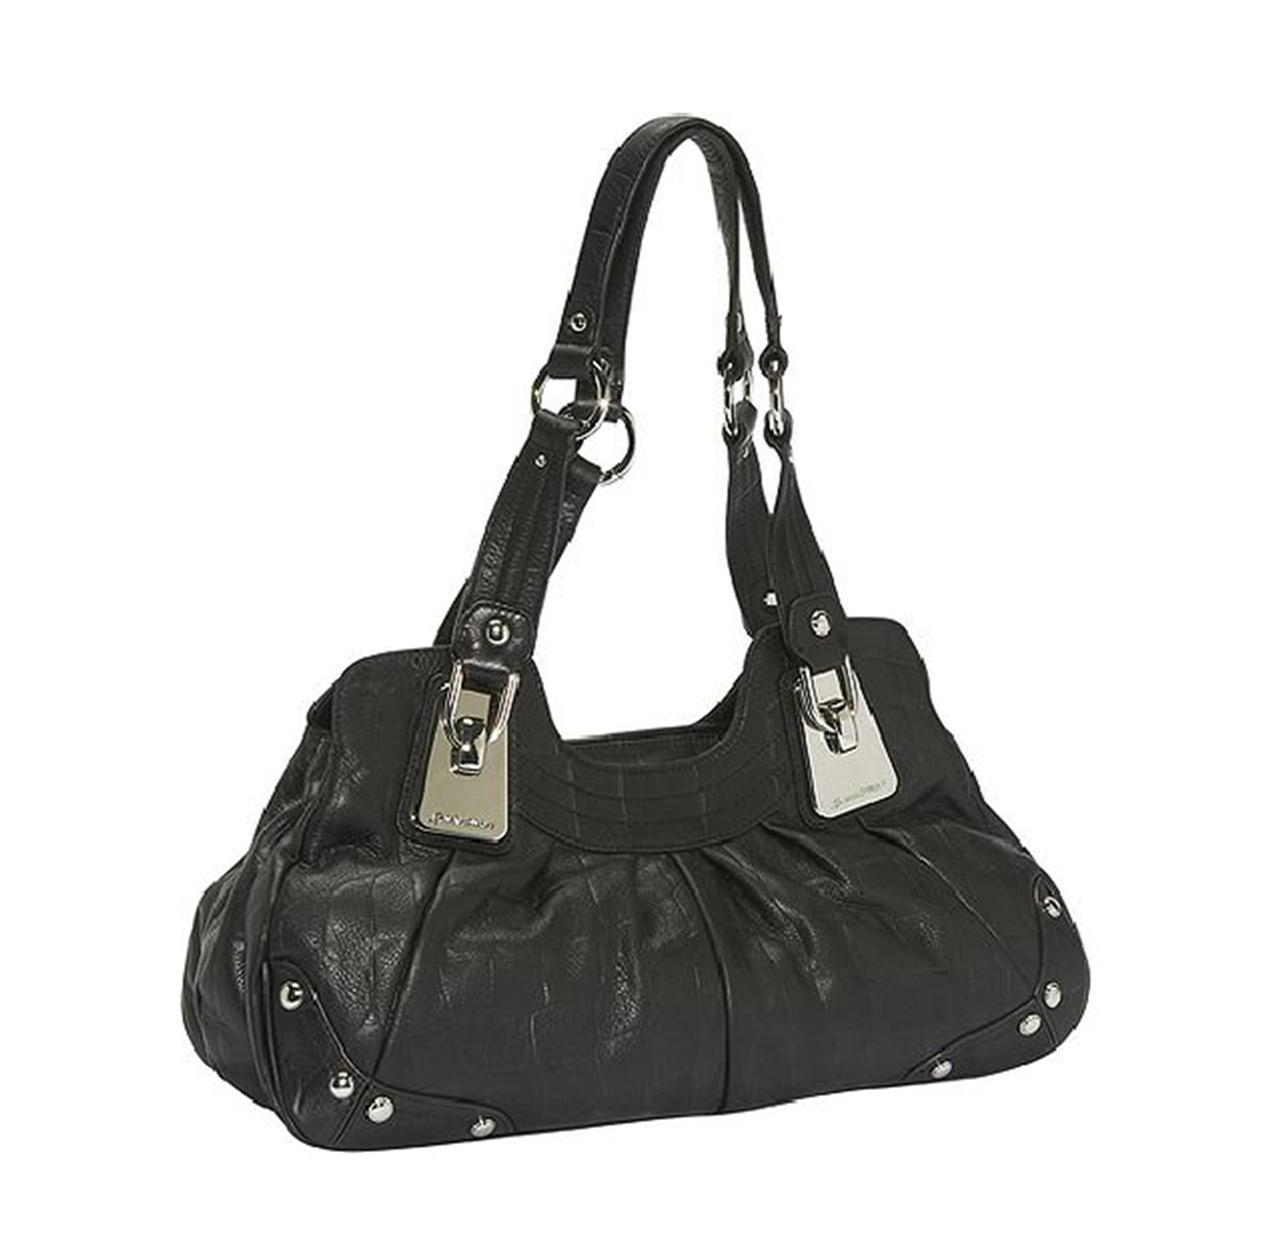 polished look, carry the MICHAEL Michael Kors? Calista LargeSatchel